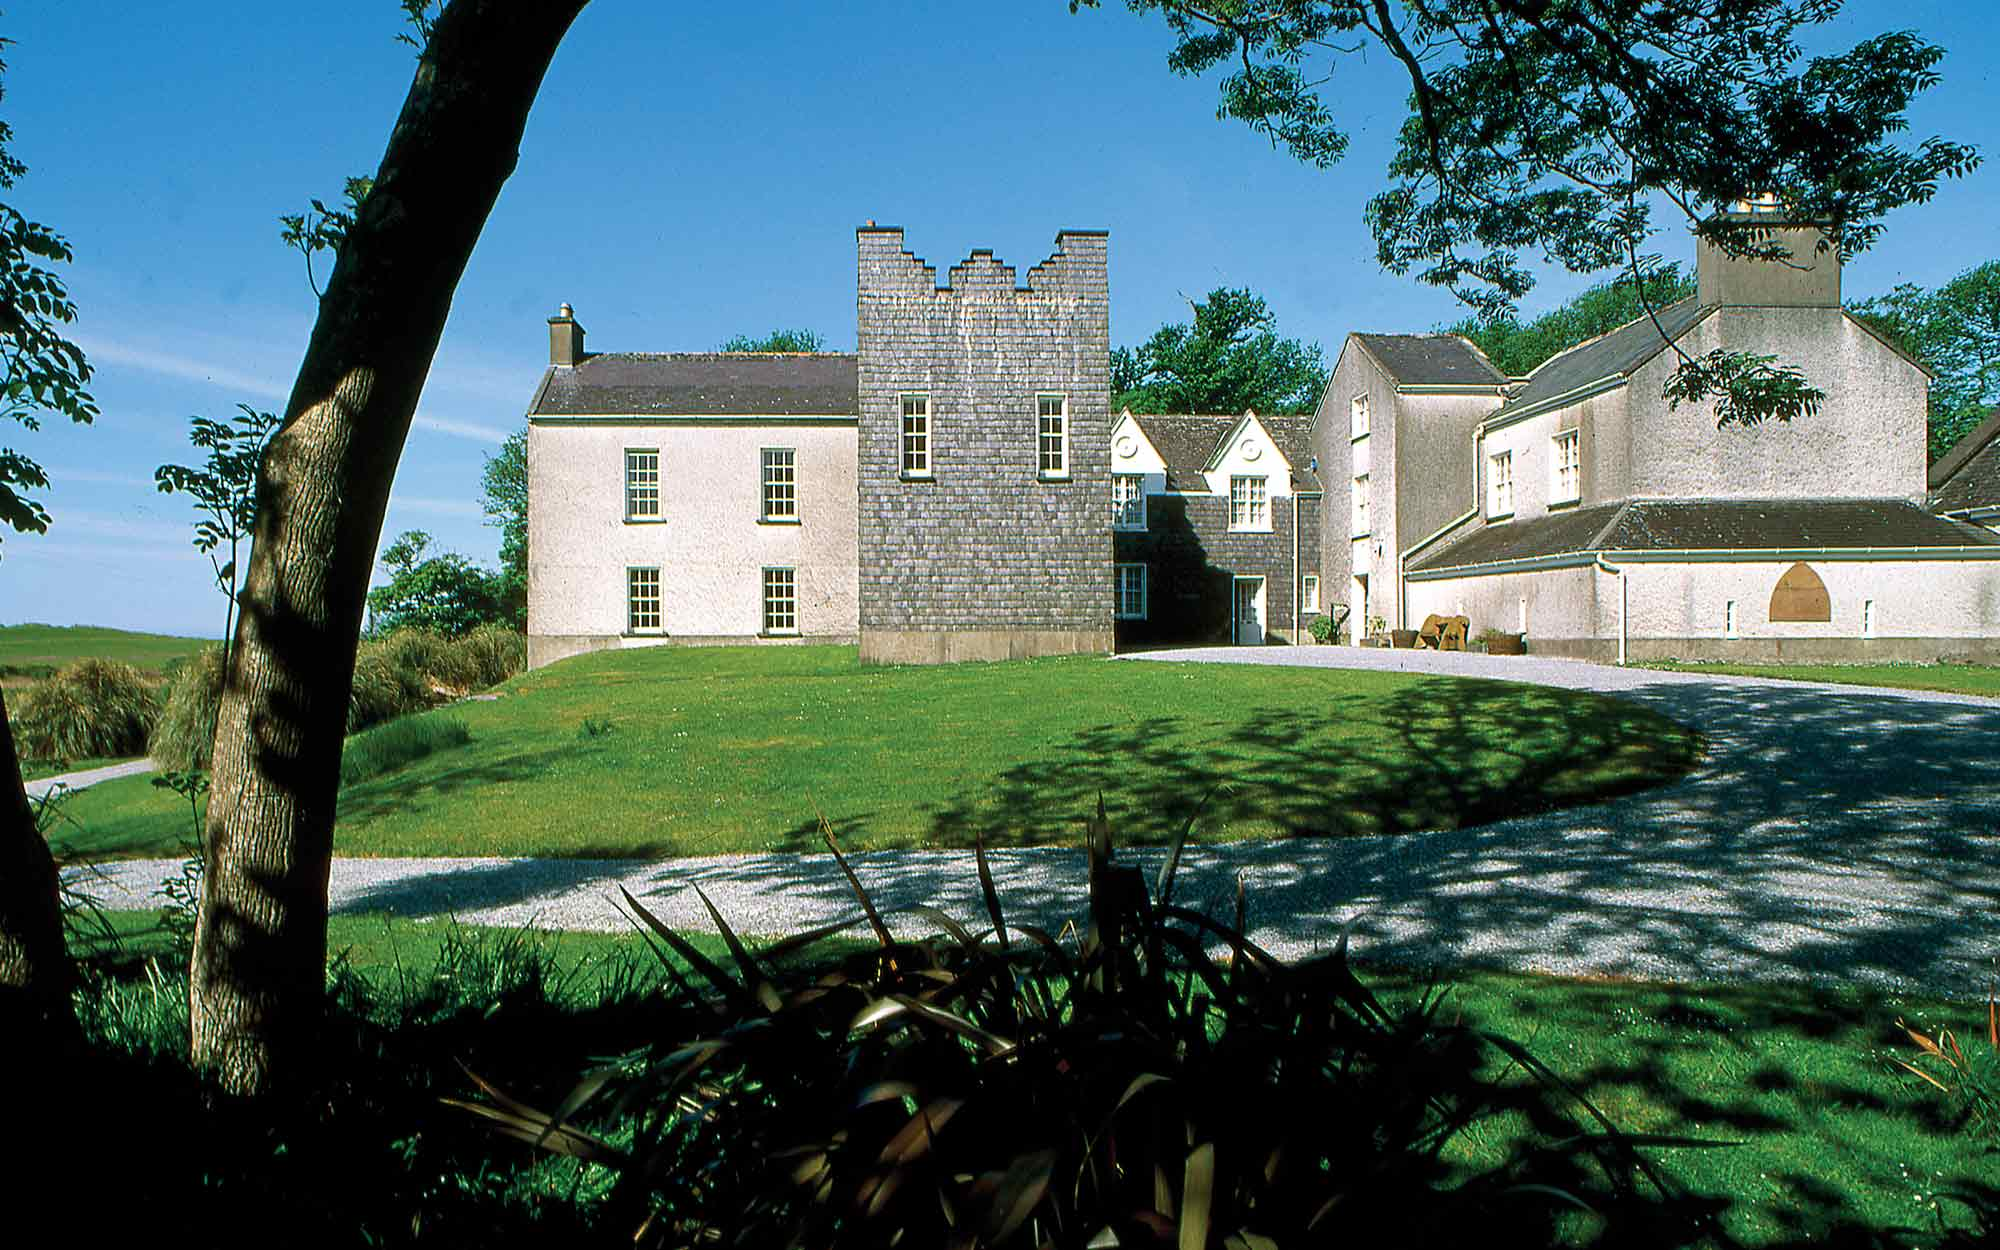 Side image of Derrynane House